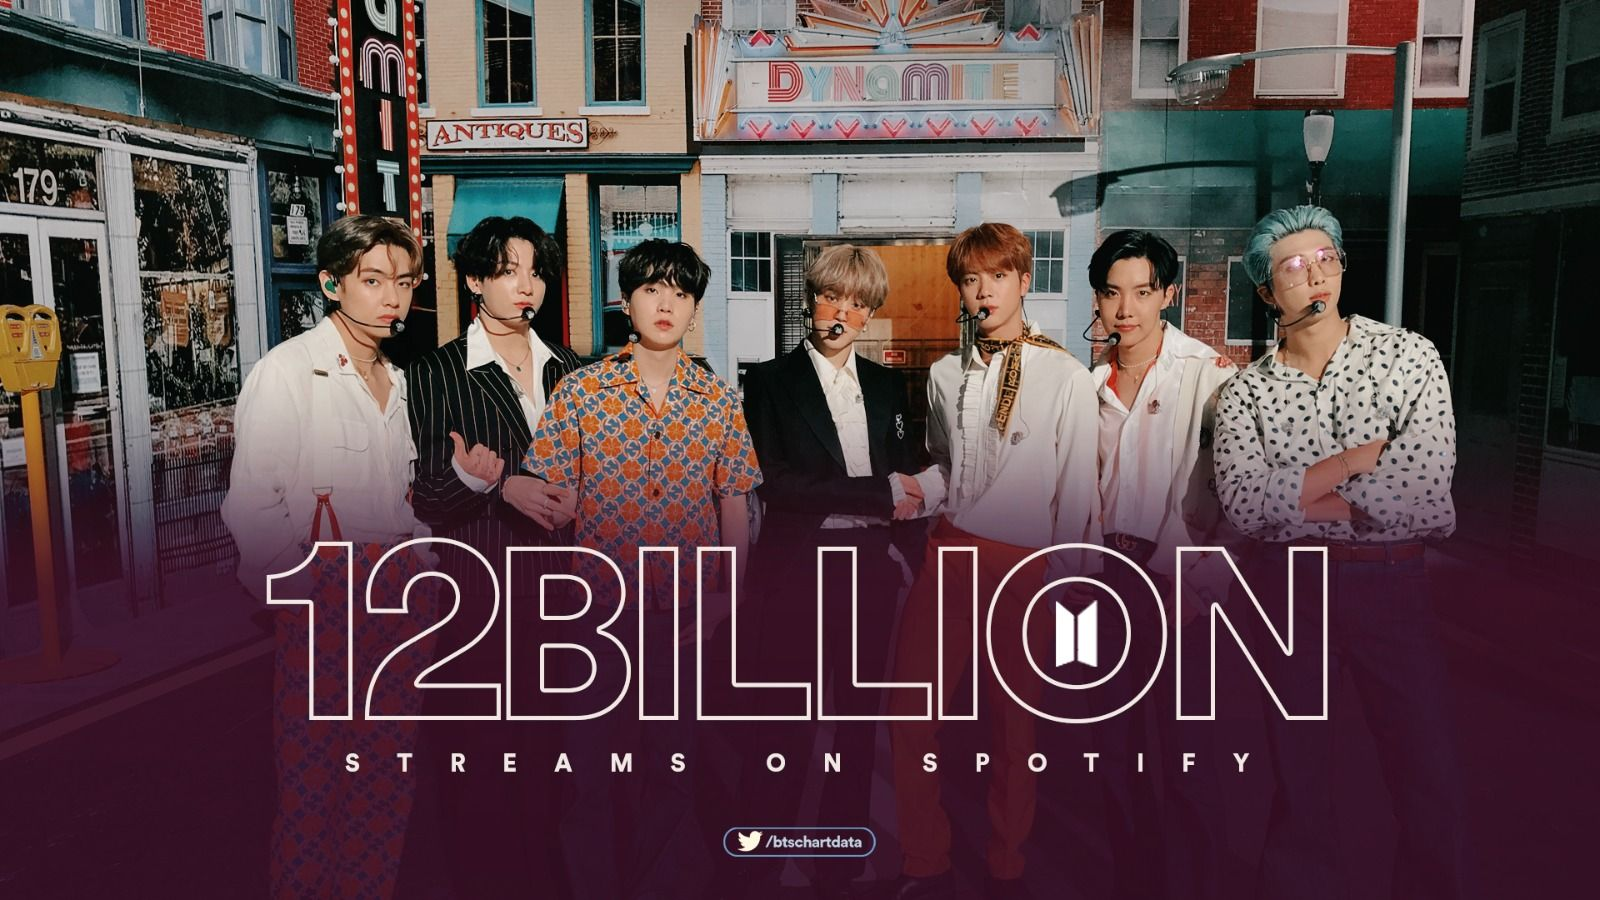 Bts Has Now Surpassed 12 Billion Streams On Spotify Streaming Bts Song Reviews